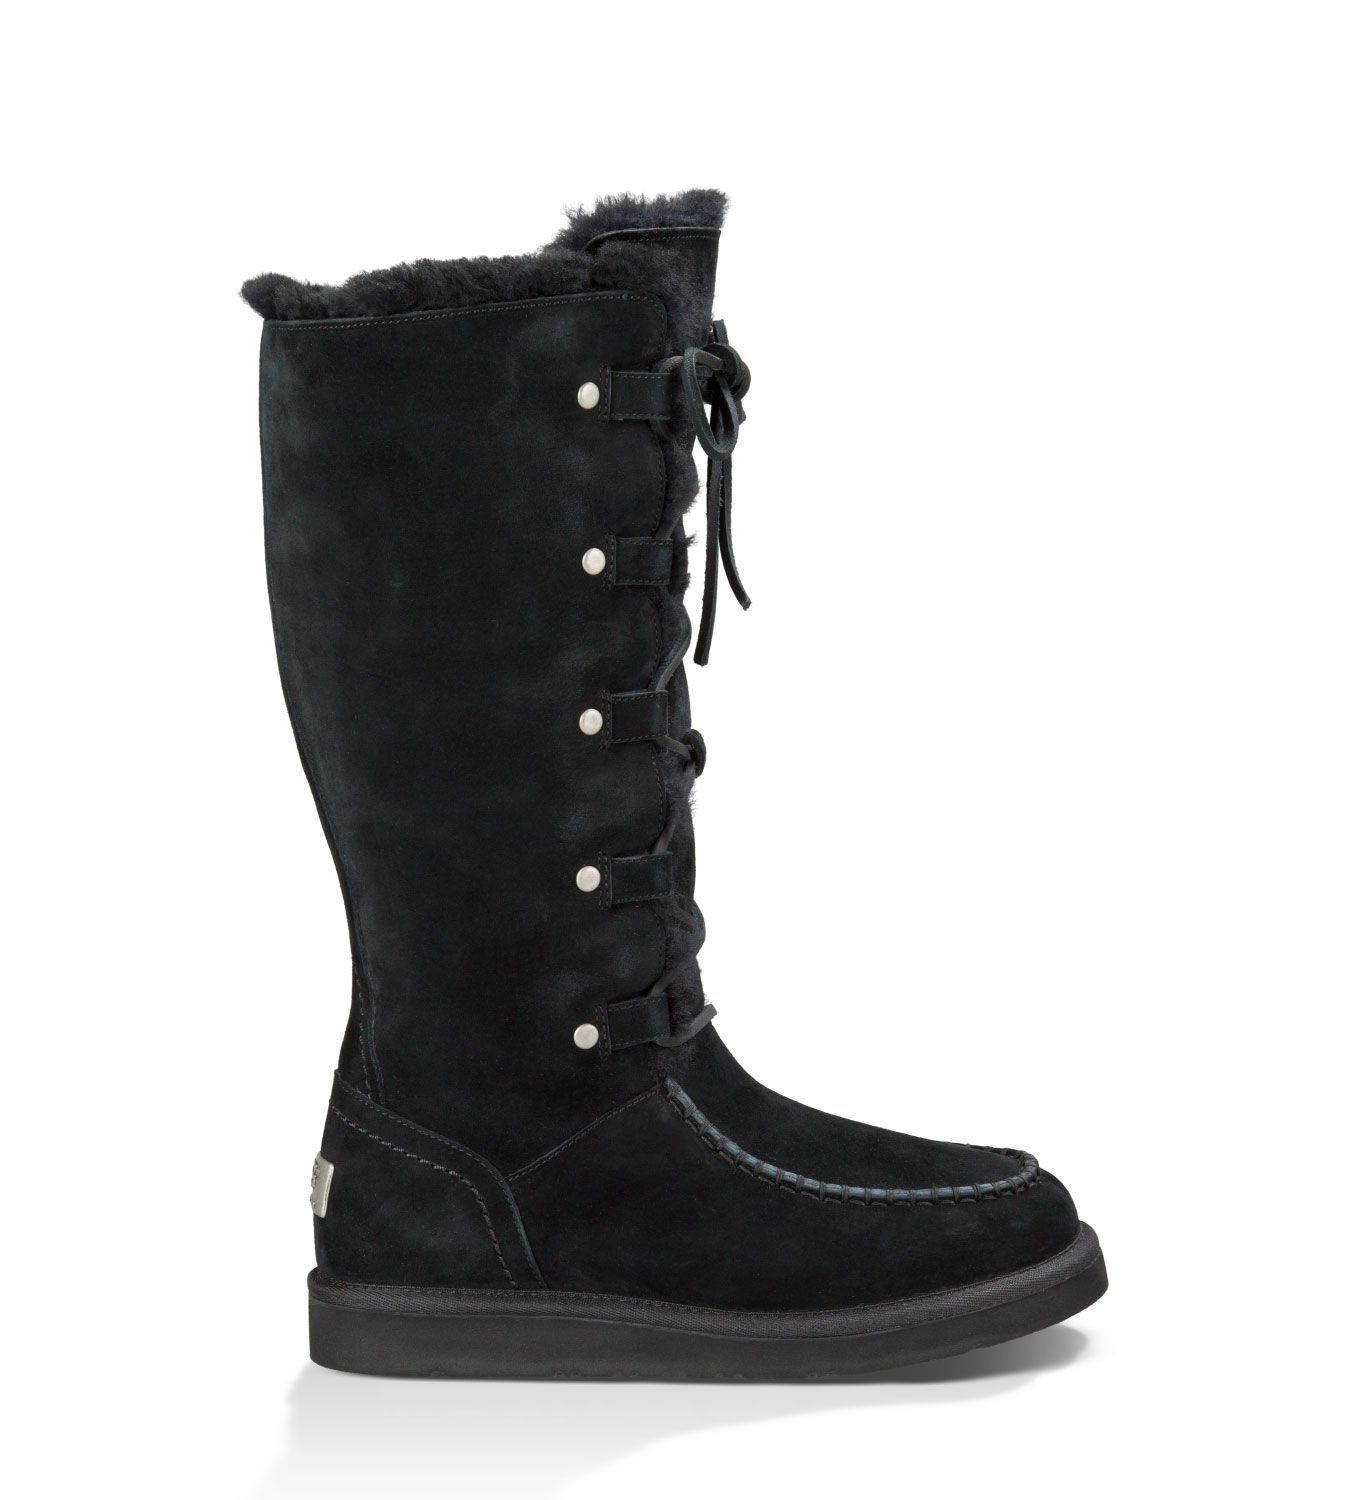 Robot Check Boots, Womens boots, Womens uggs